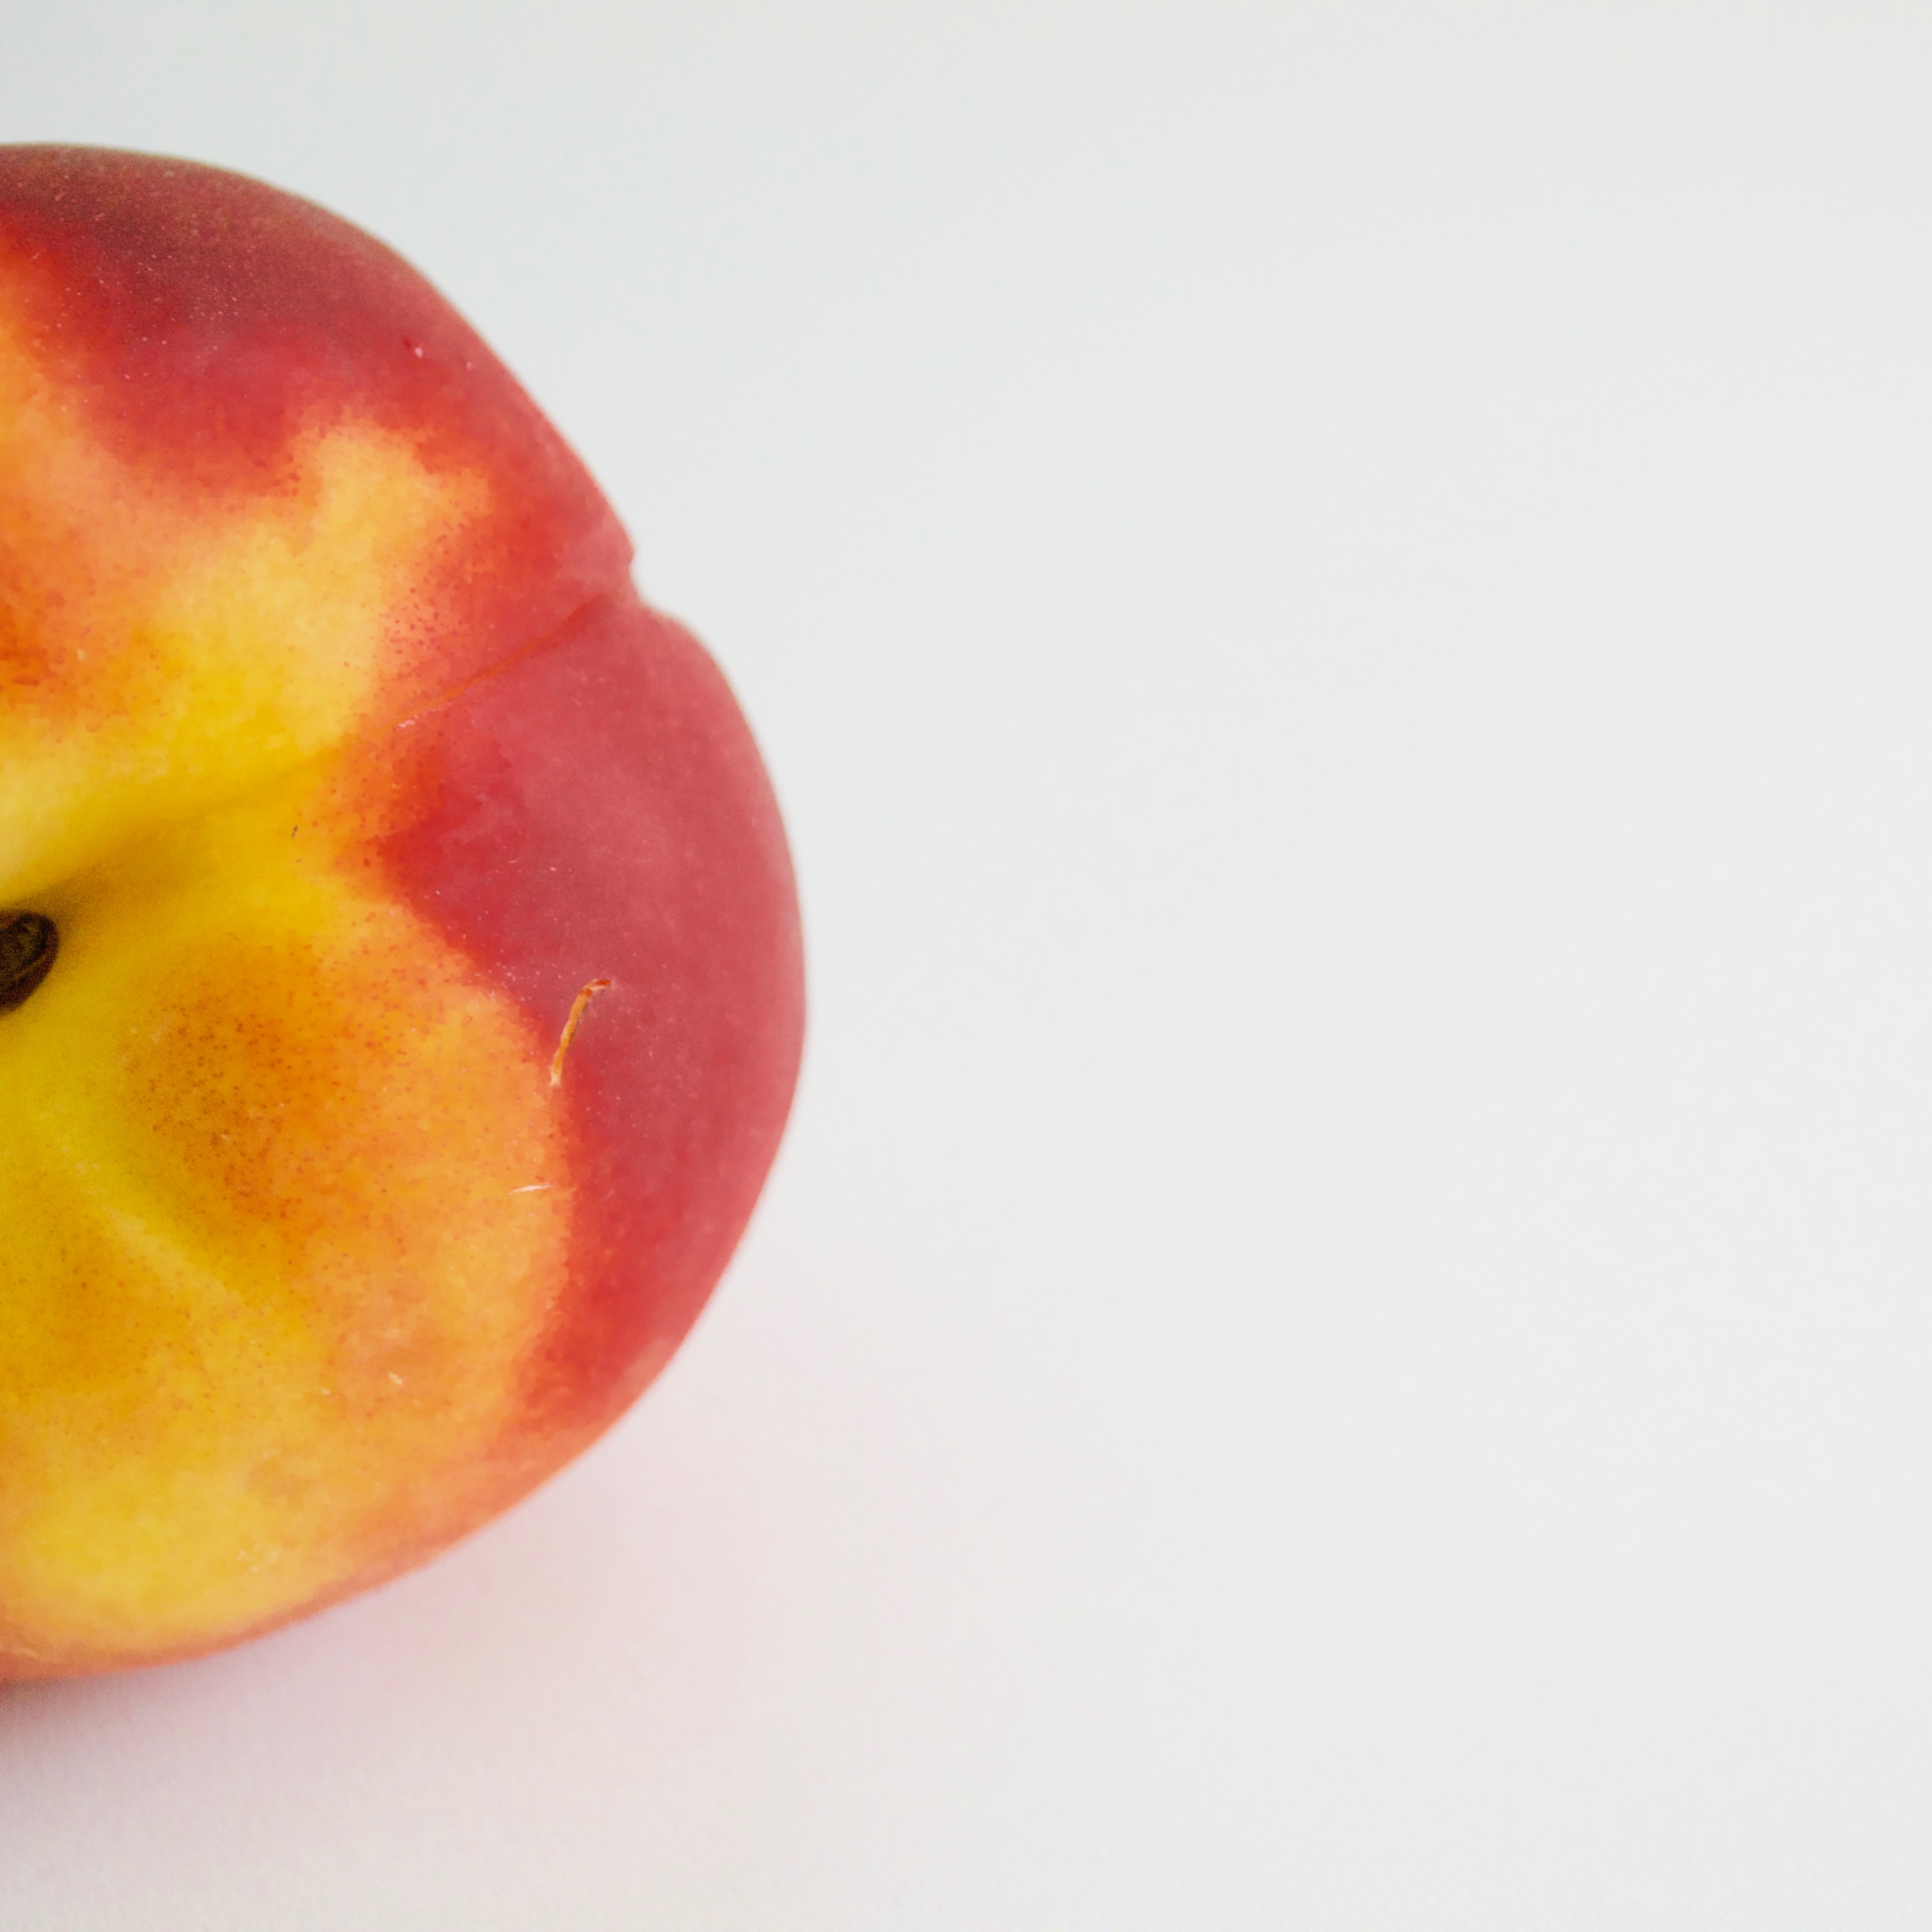 intuitive-eating-peach.jpg